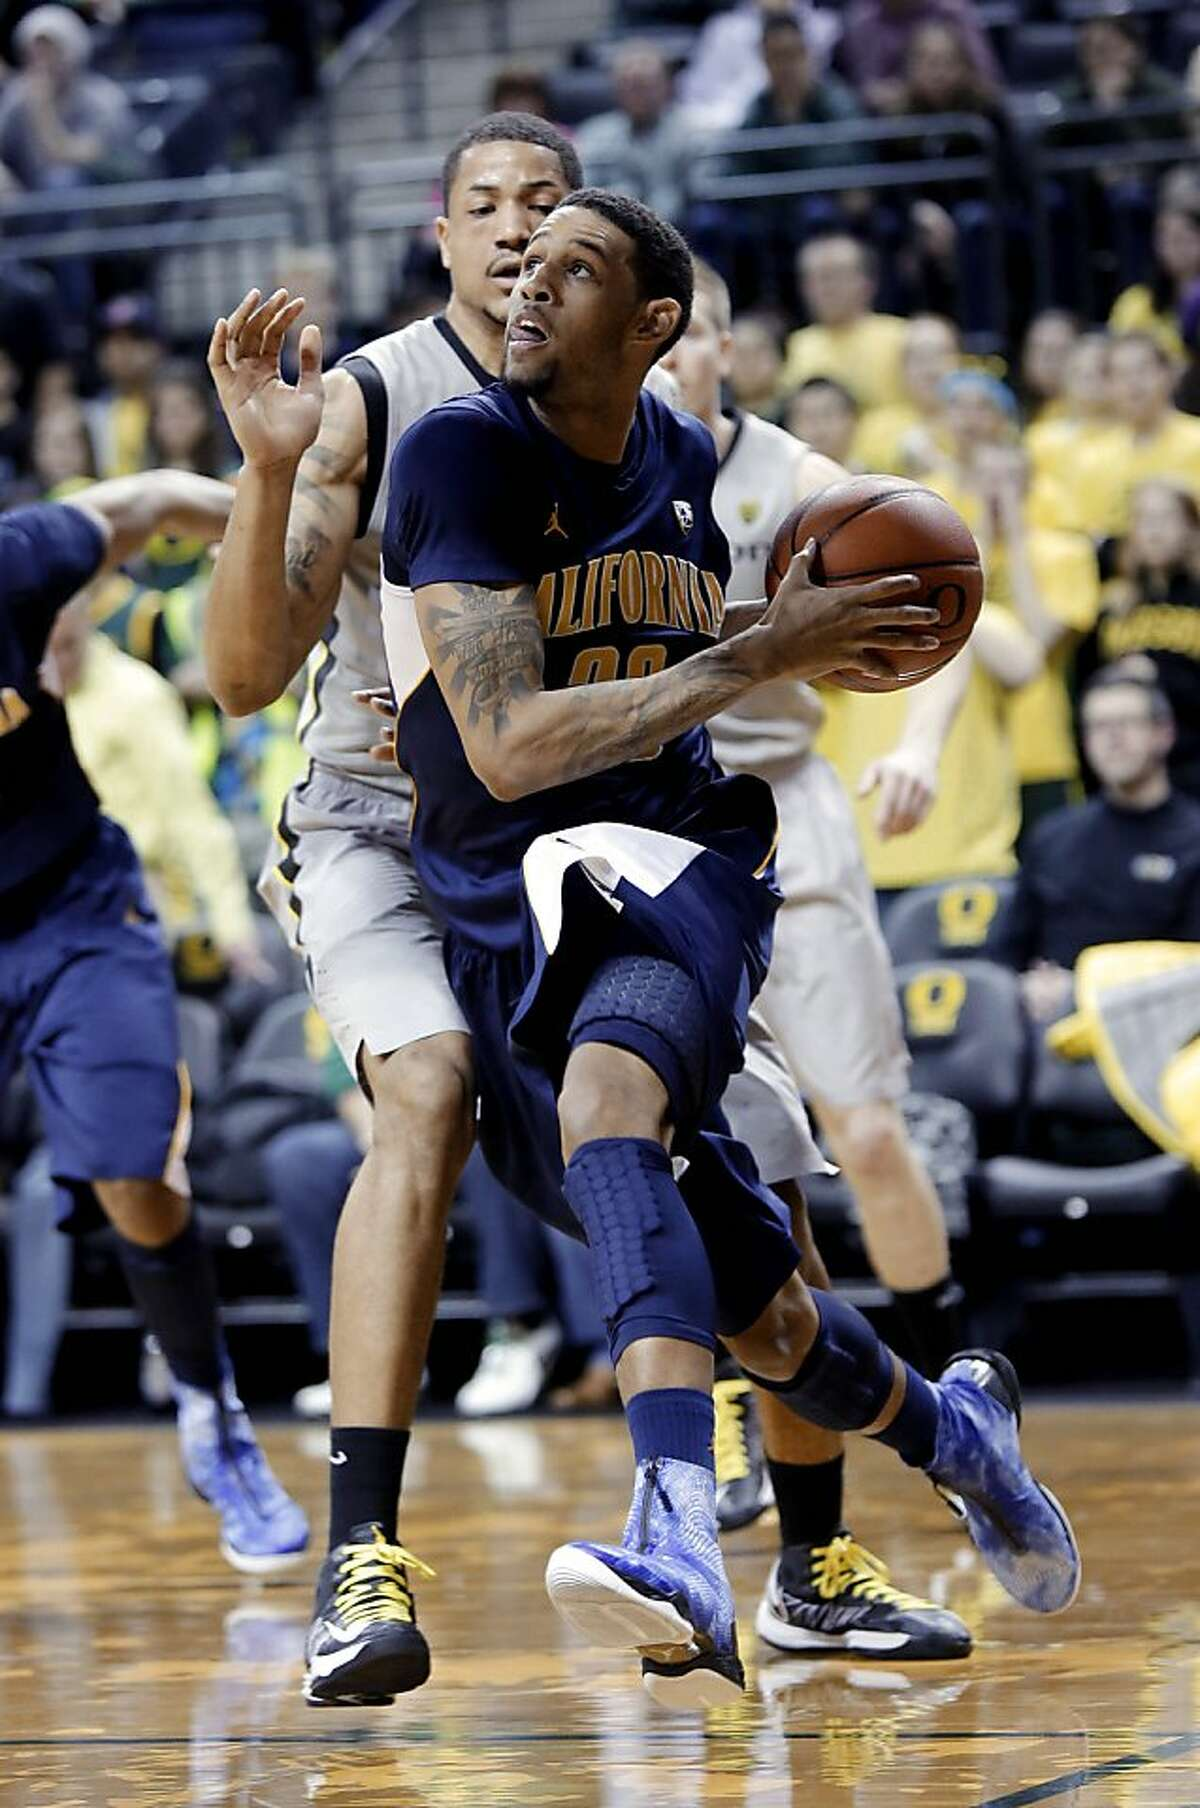 California guard Allen Crabbe, right, drives the baseline against Oregon center Tony Woods during the second half of an NCAA college basketball game in Eugene, Ore., Thursday, Feb. 21, 2013. Crabbe scored 12 points as California defeated Oregon 48-46. (AP Photo/Don Ryan)